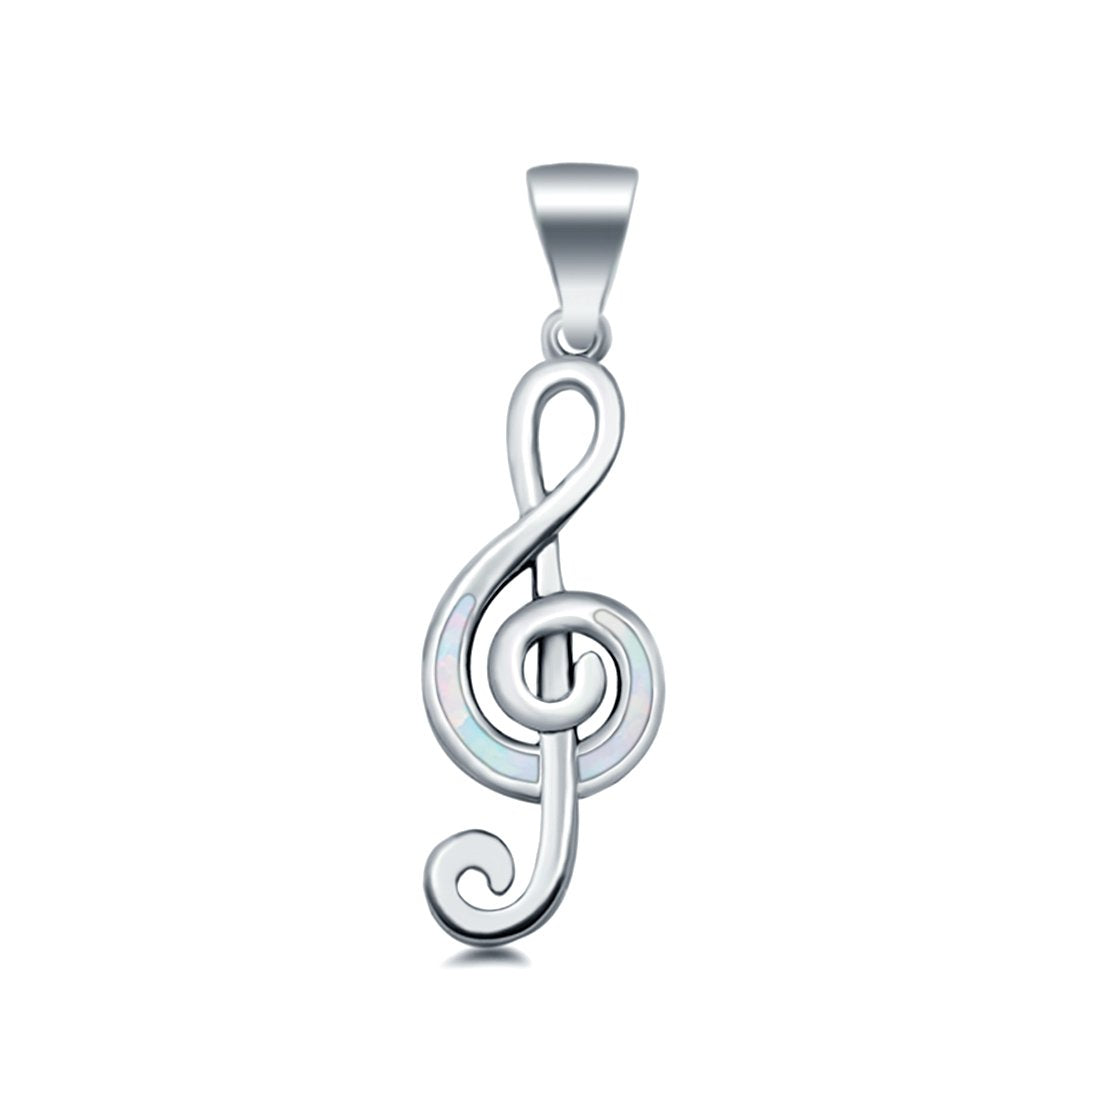 Musical Note Pendant Charm Lab Created Opal Solid 925 Sterling Silver